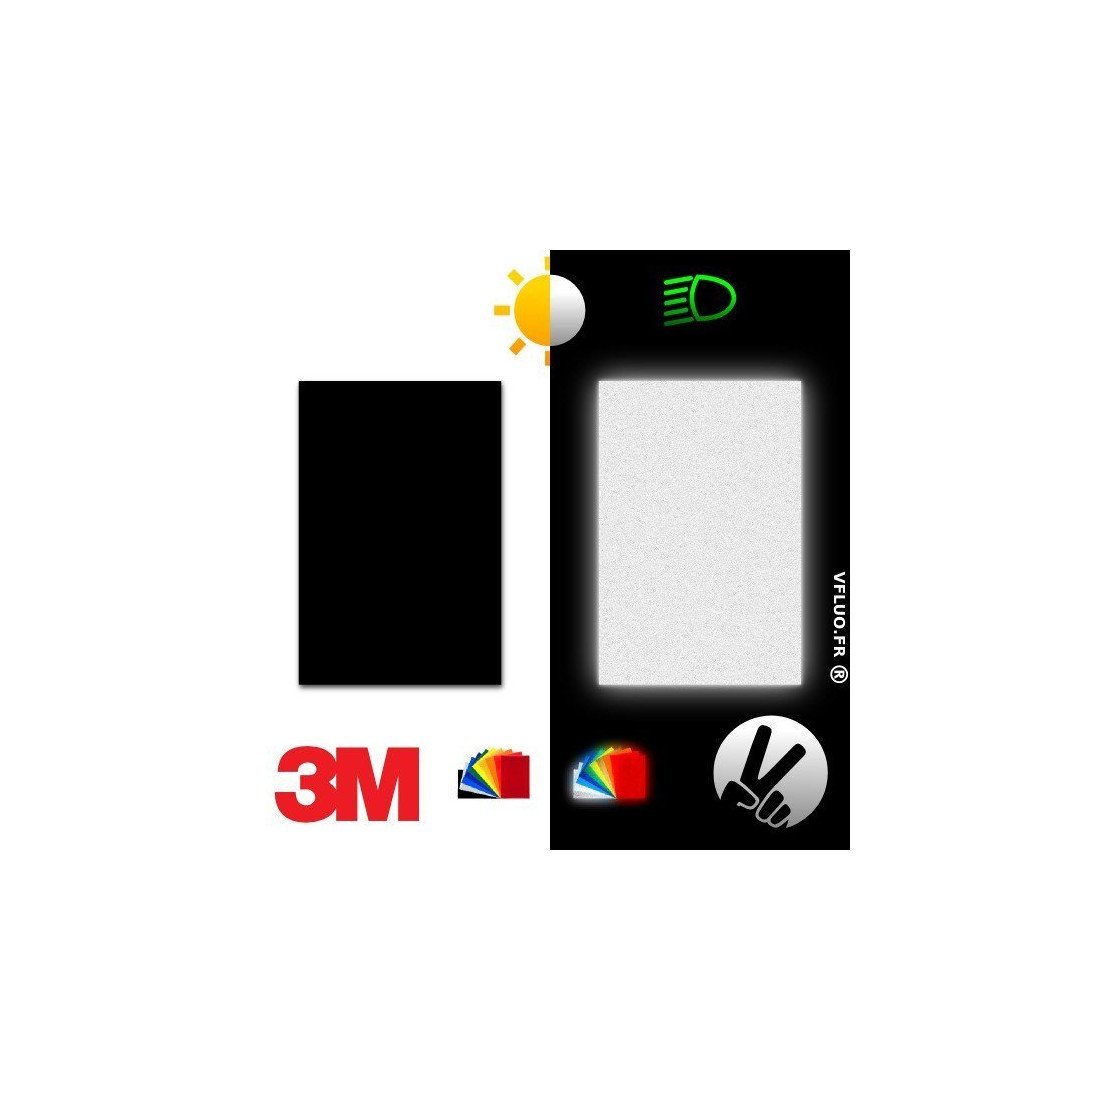 3M™ REFLECTIVE BLACK Adhesive Tape for the motorcycle and helmet